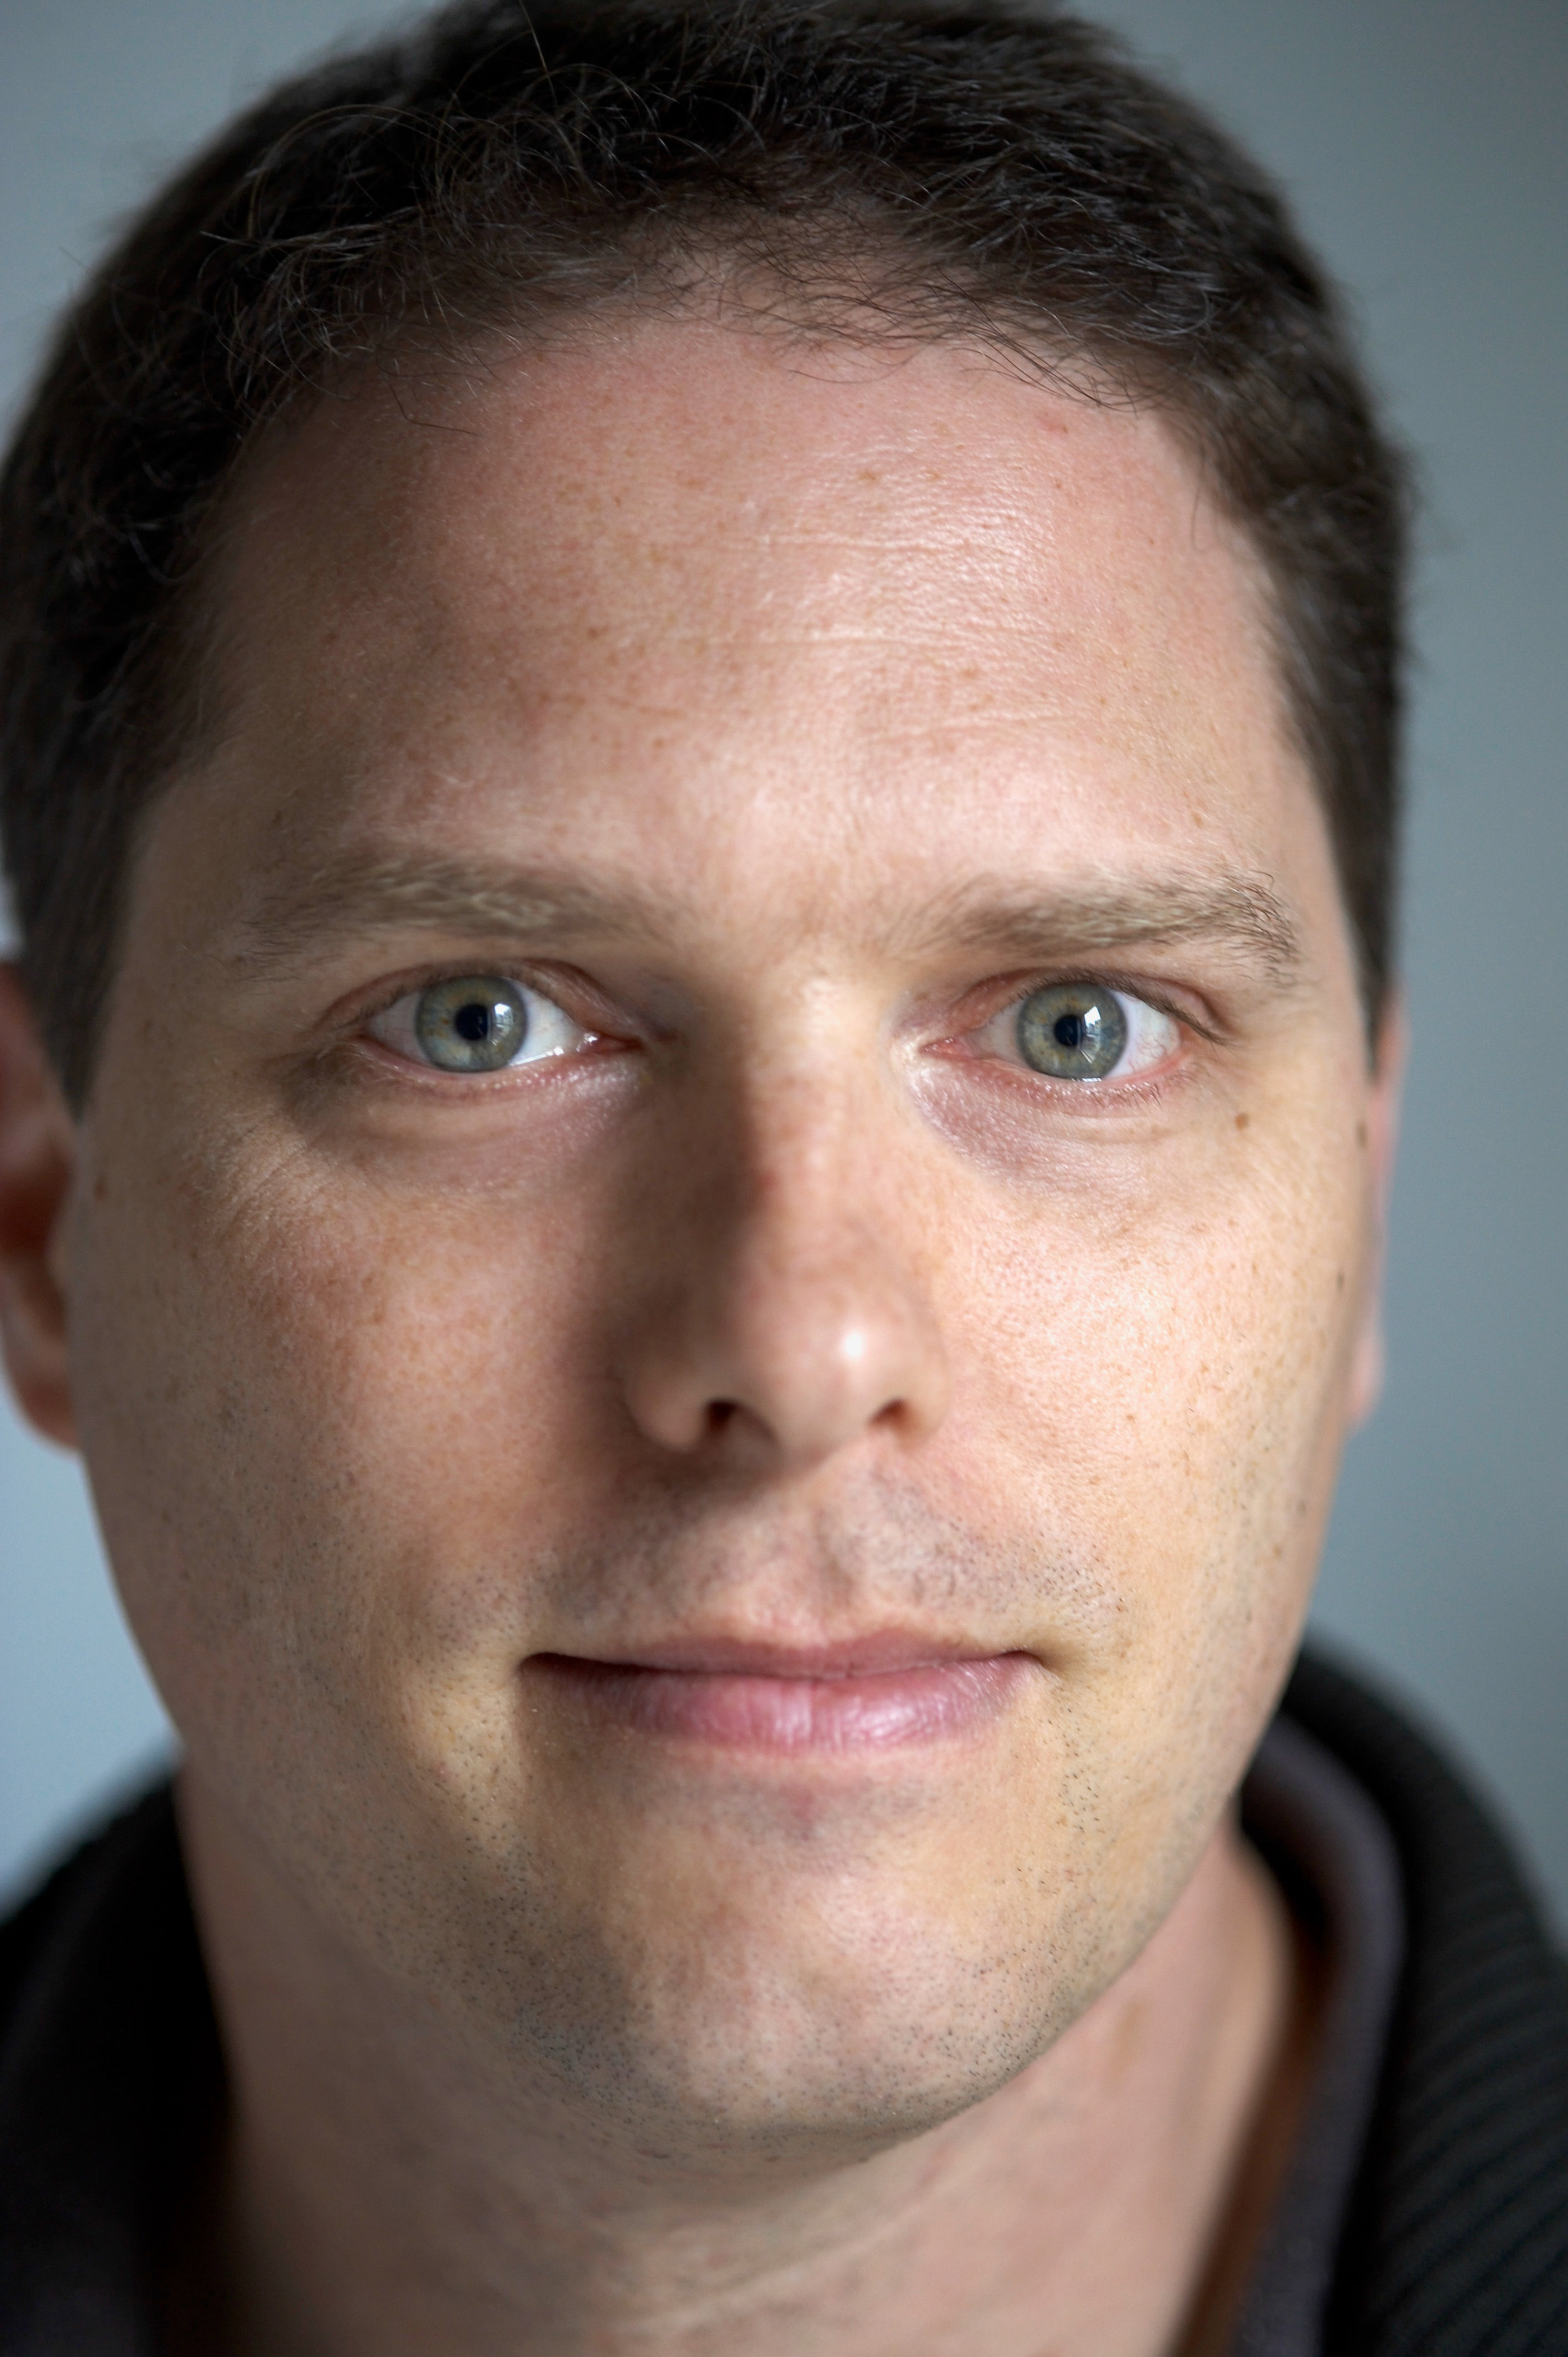 adam_richardson_headshot-1.jpg